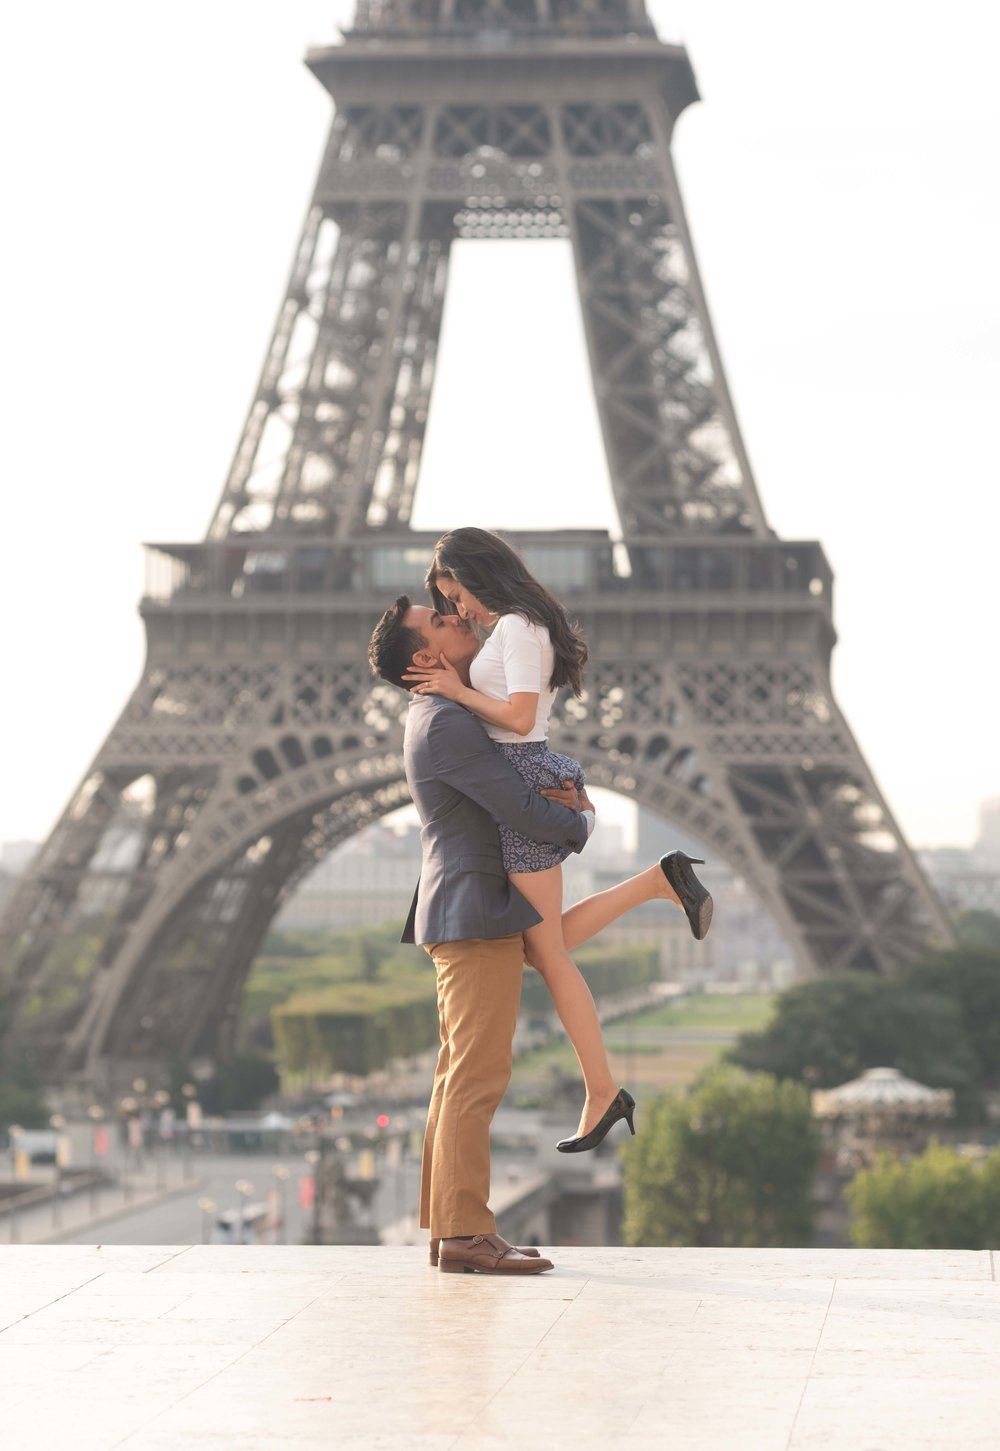 Surprise proposal in front of Eiffel Tower